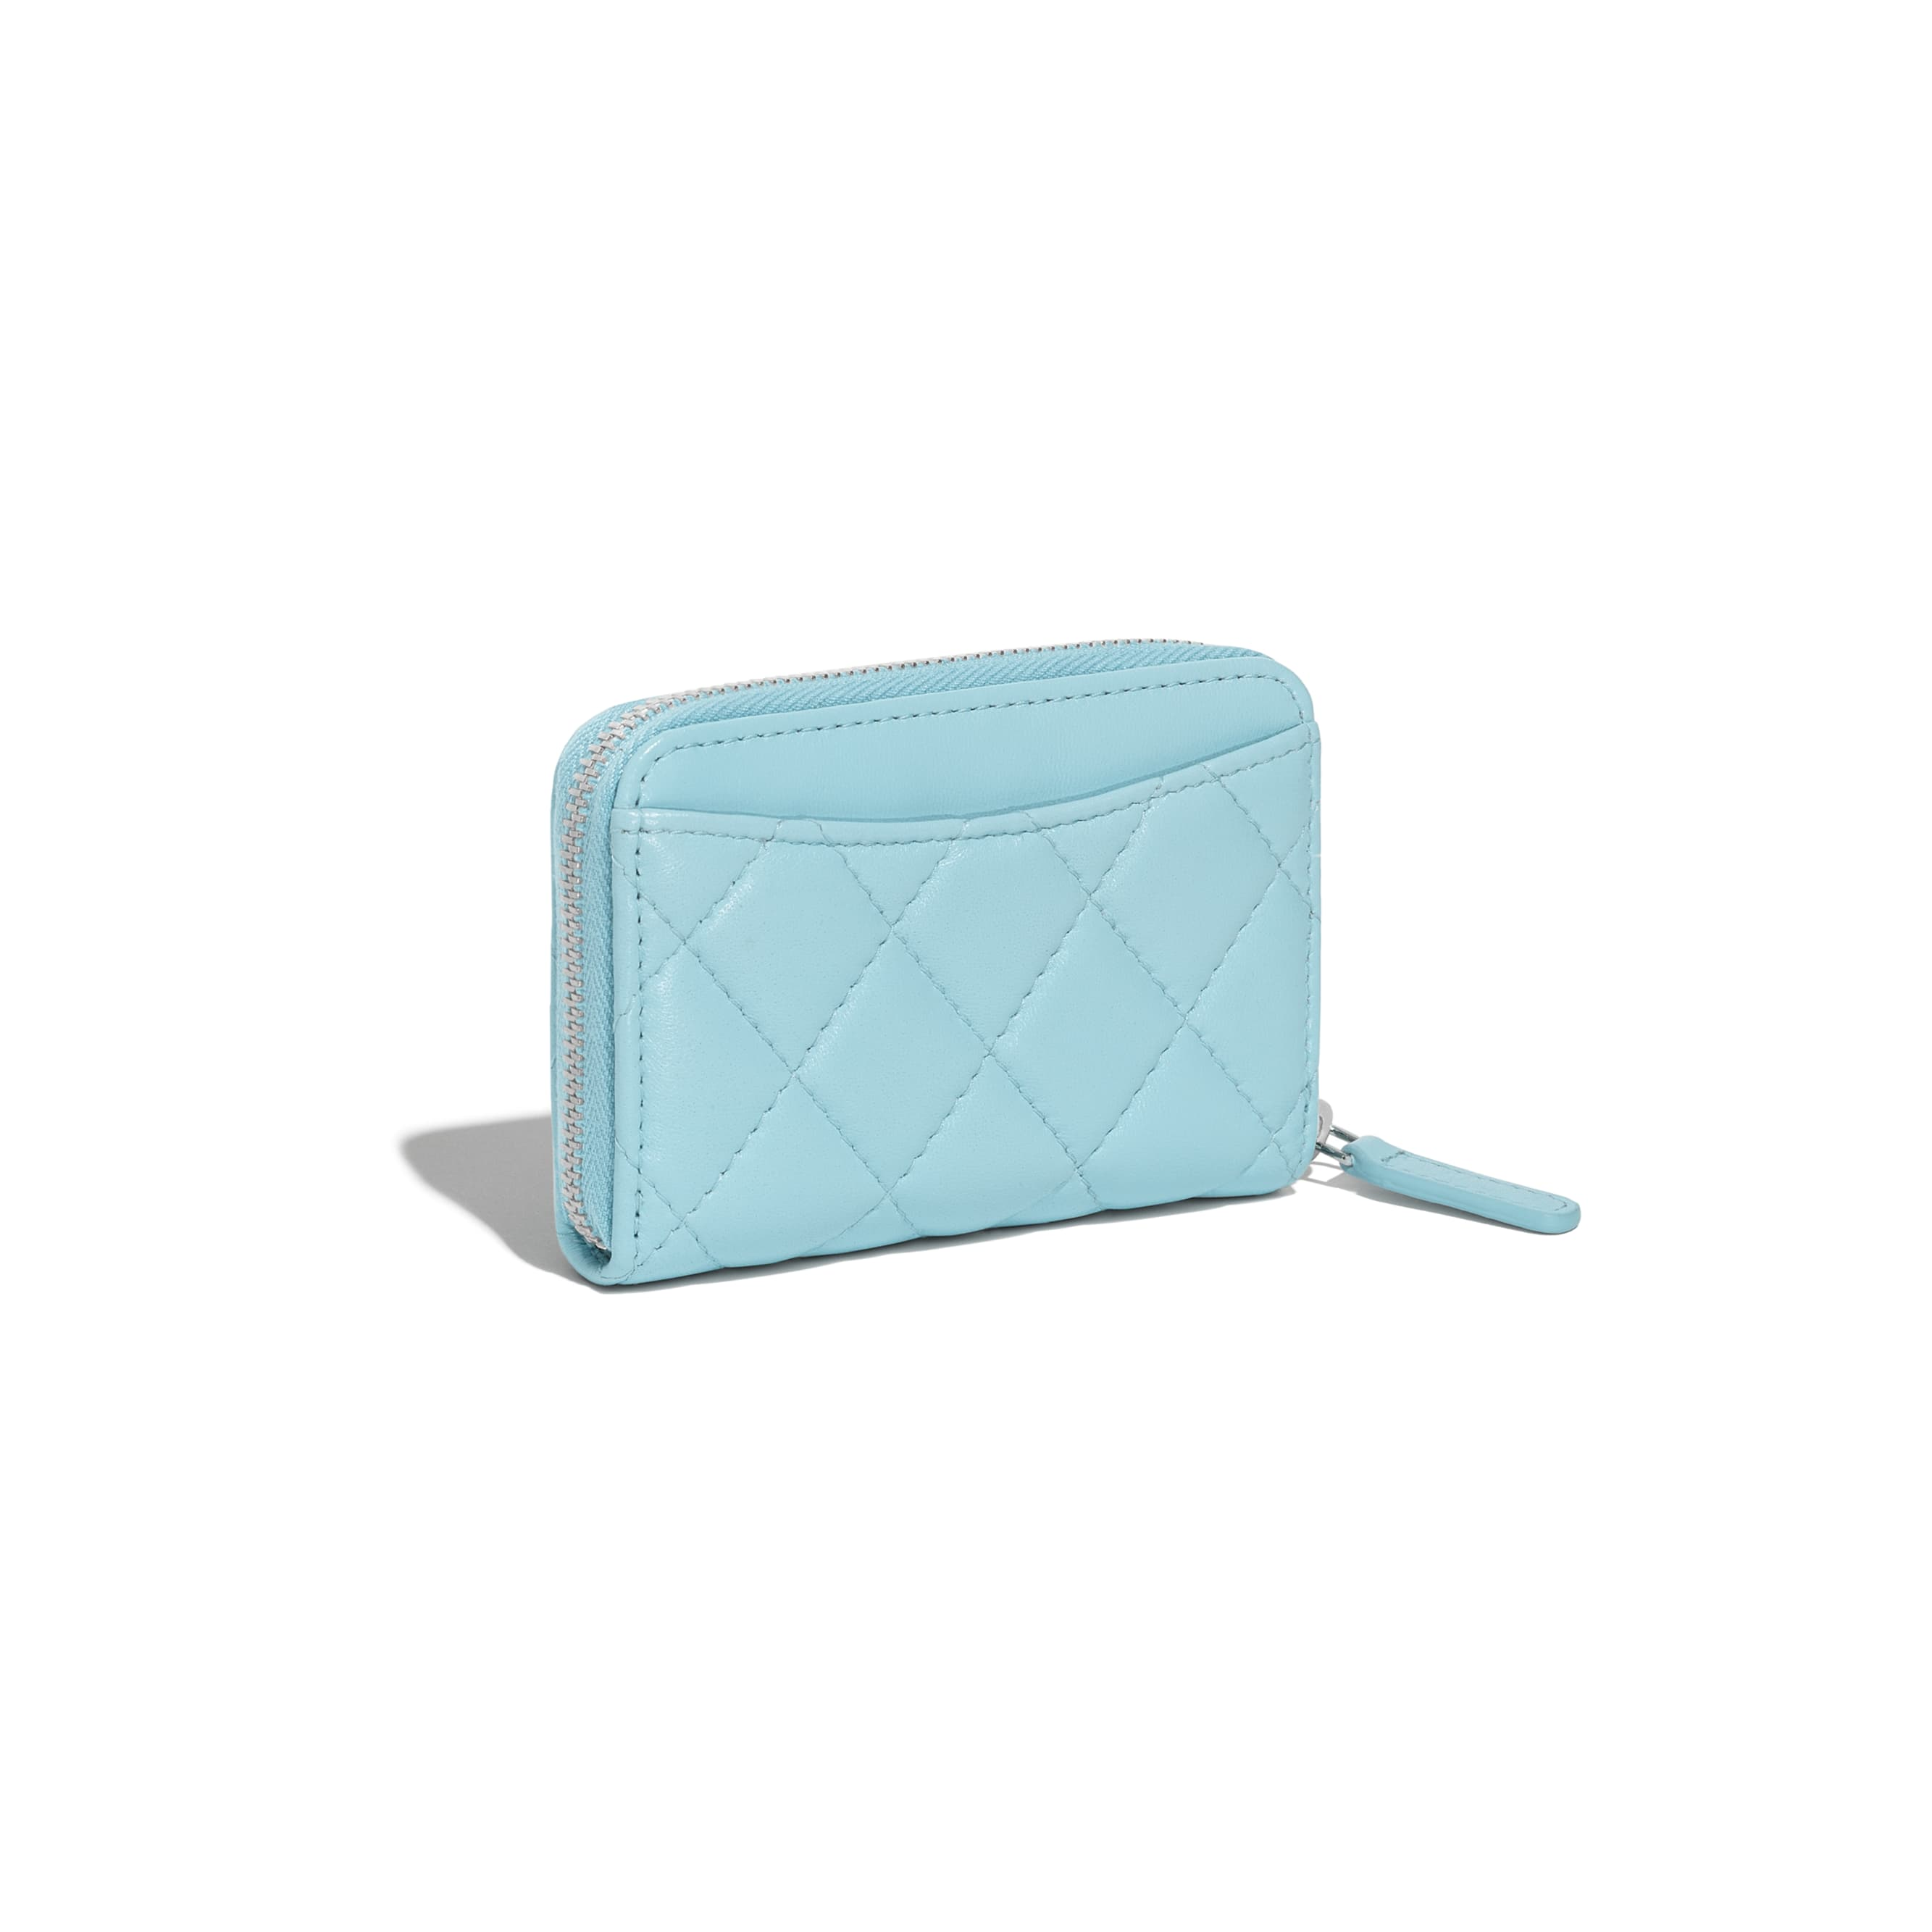 Classic Zipped Coin Purse - Neon Blue - Lambskin - CHANEL - Extra view - see standard sized version